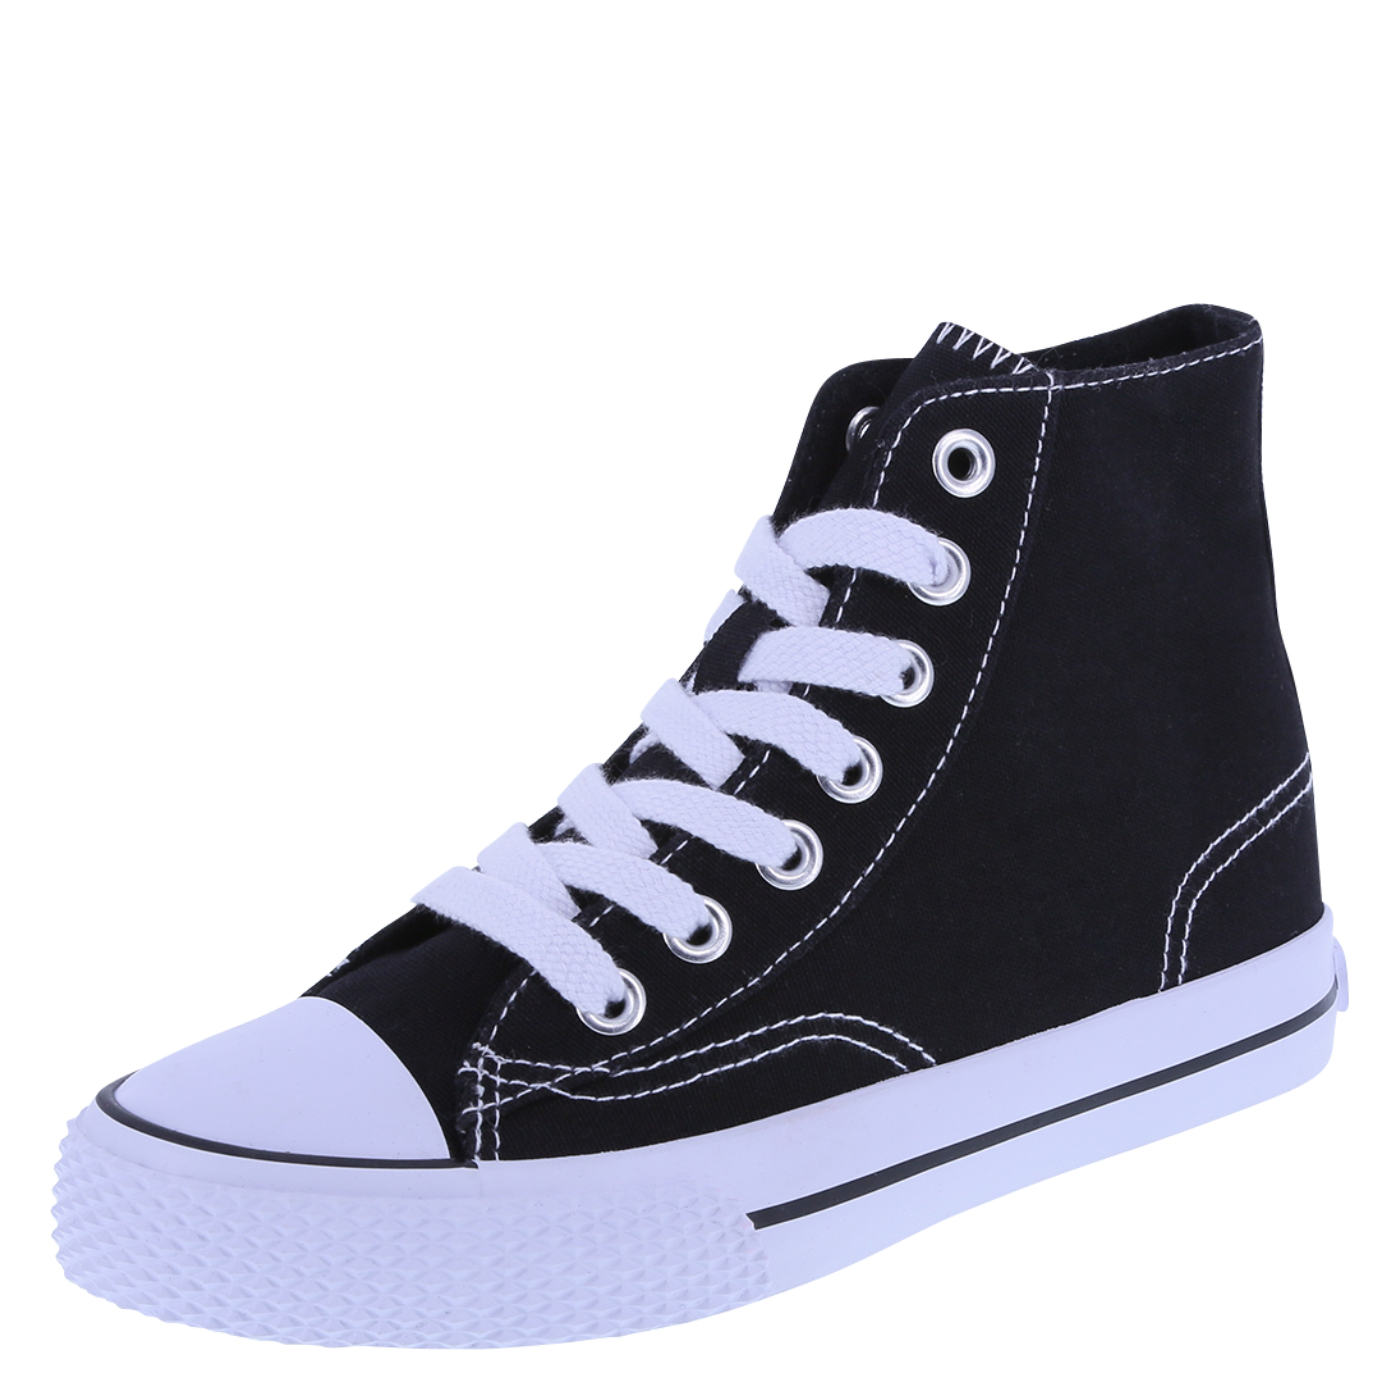 sneakers for girls kidsu0027 legacee sneaker high-top, black/white QQDPKYA